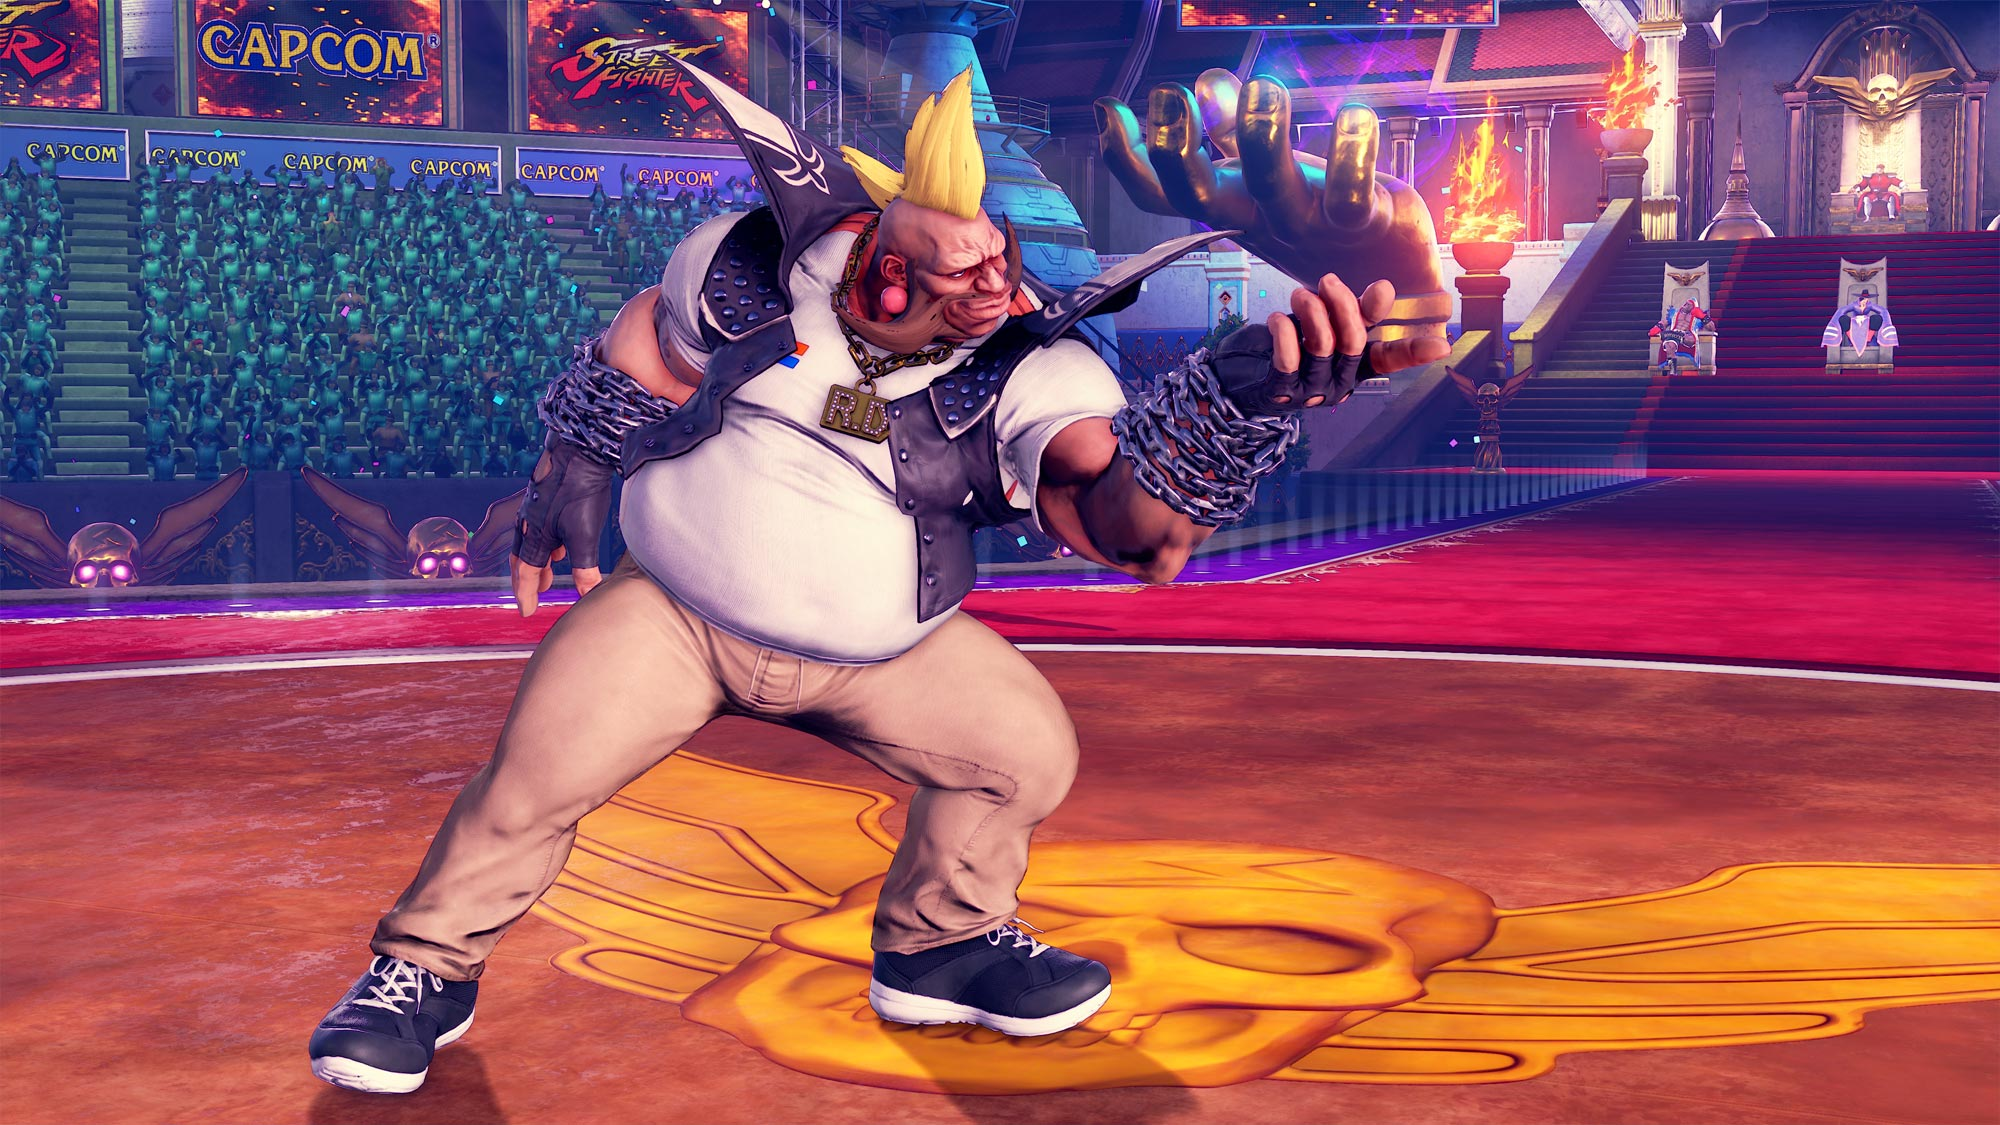 MenaRD's Street Fighter 5 Capcom Cup Champion's Choice Birdie costume 8 out of 9 image gallery